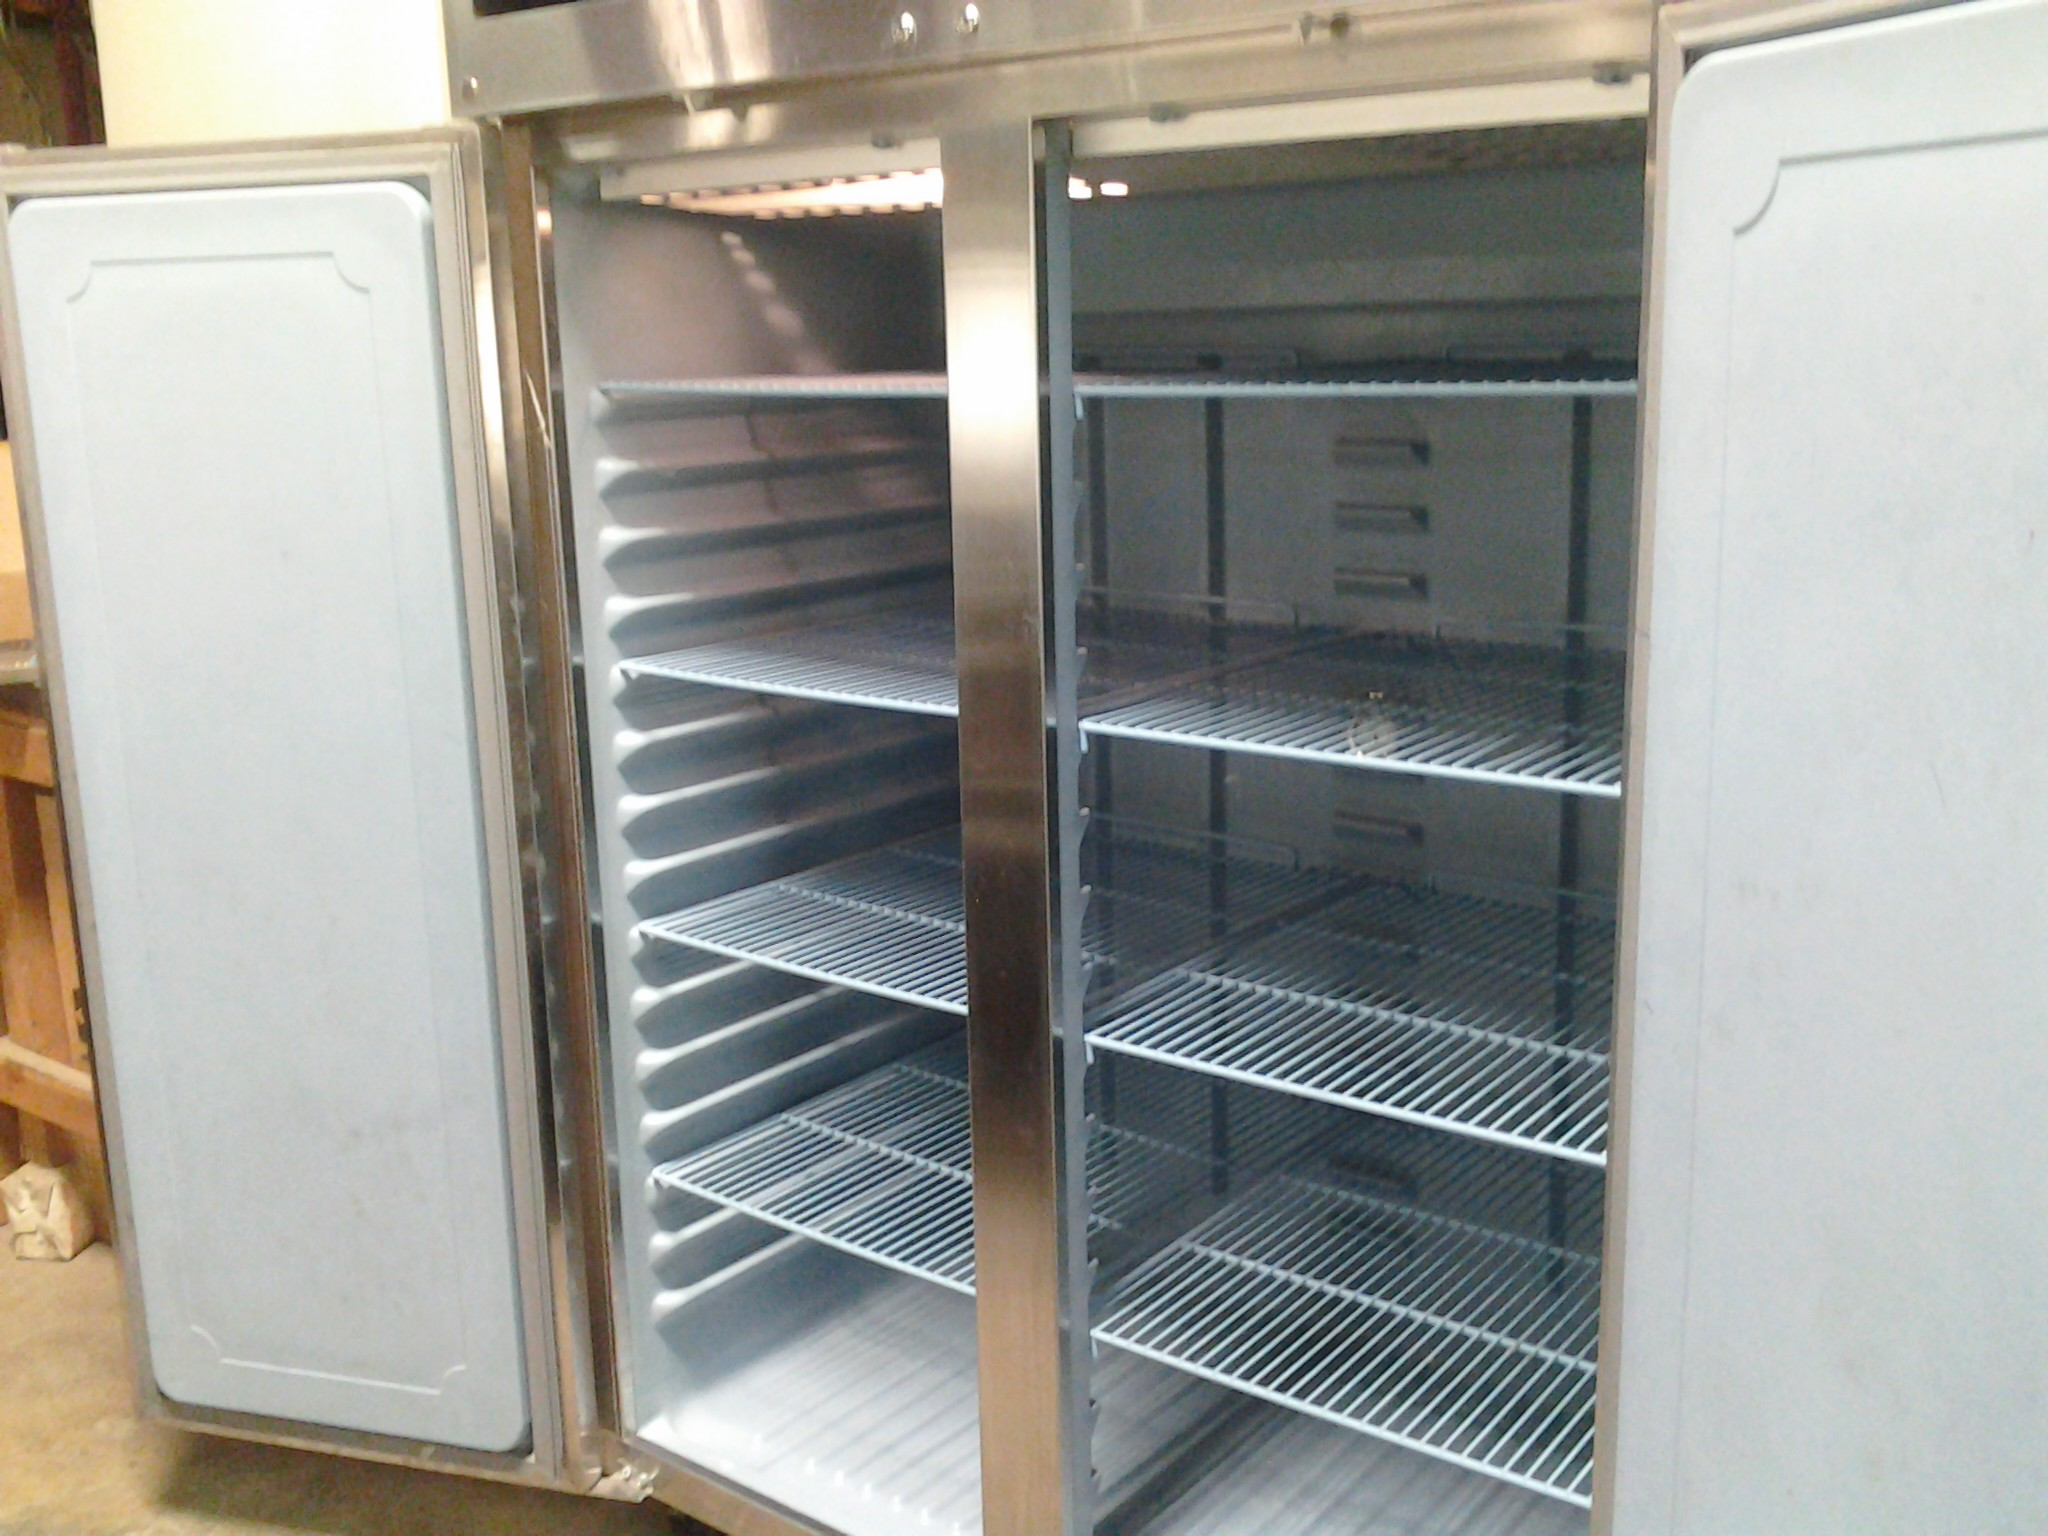 Spokane Commercial Refrigeration Services Air Control